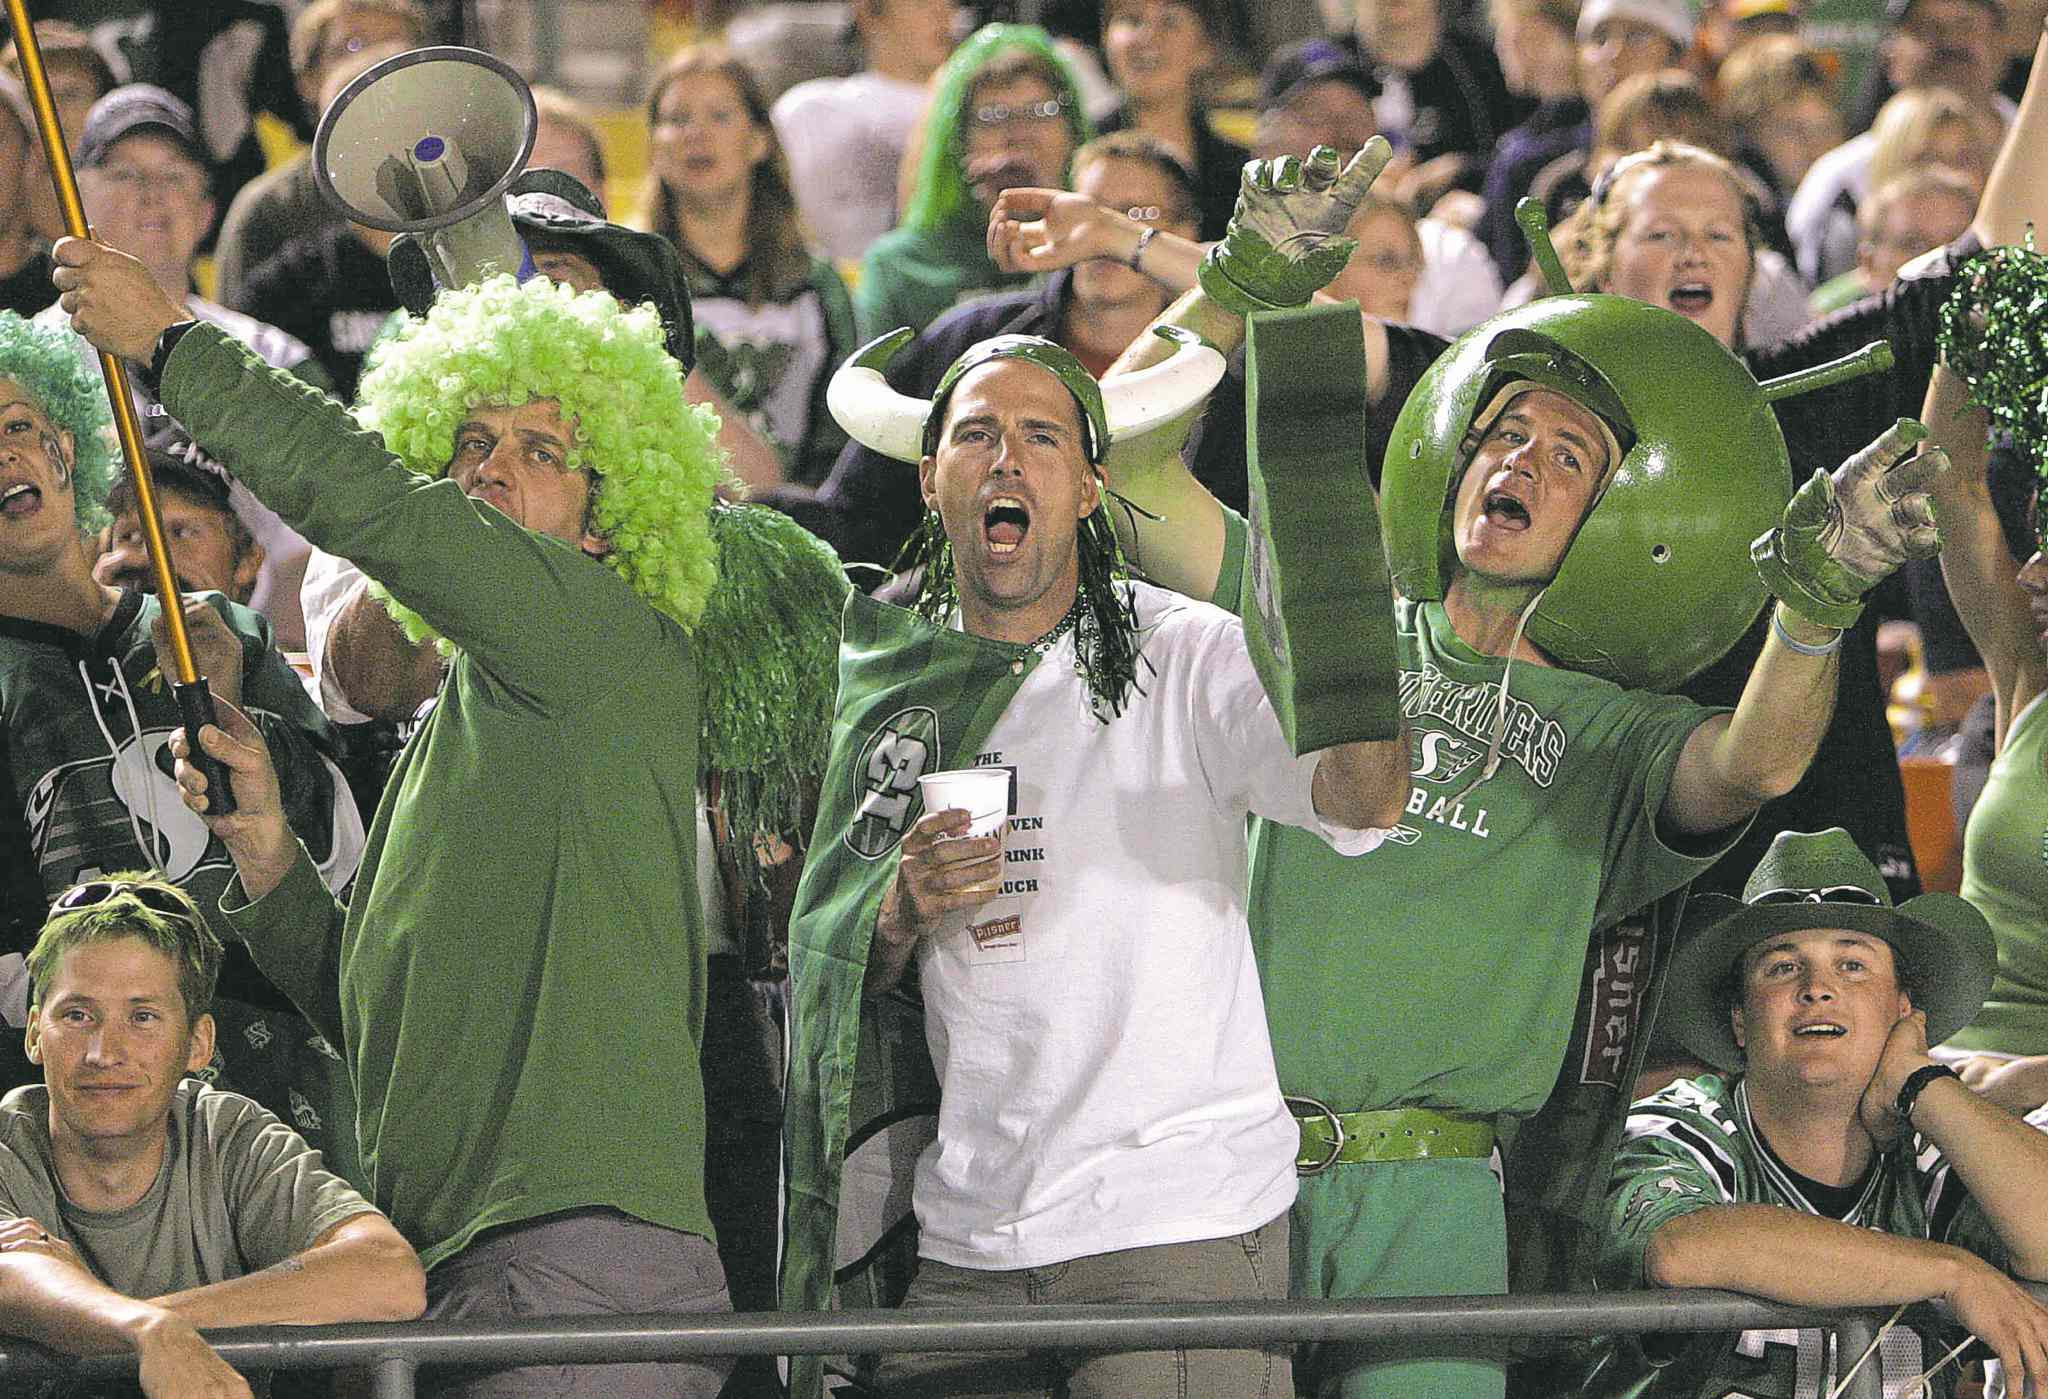 The melonheads and banjo pluckers will be out in full force today at Mosiac Stadium as their Green riders host the Blue Bombers.